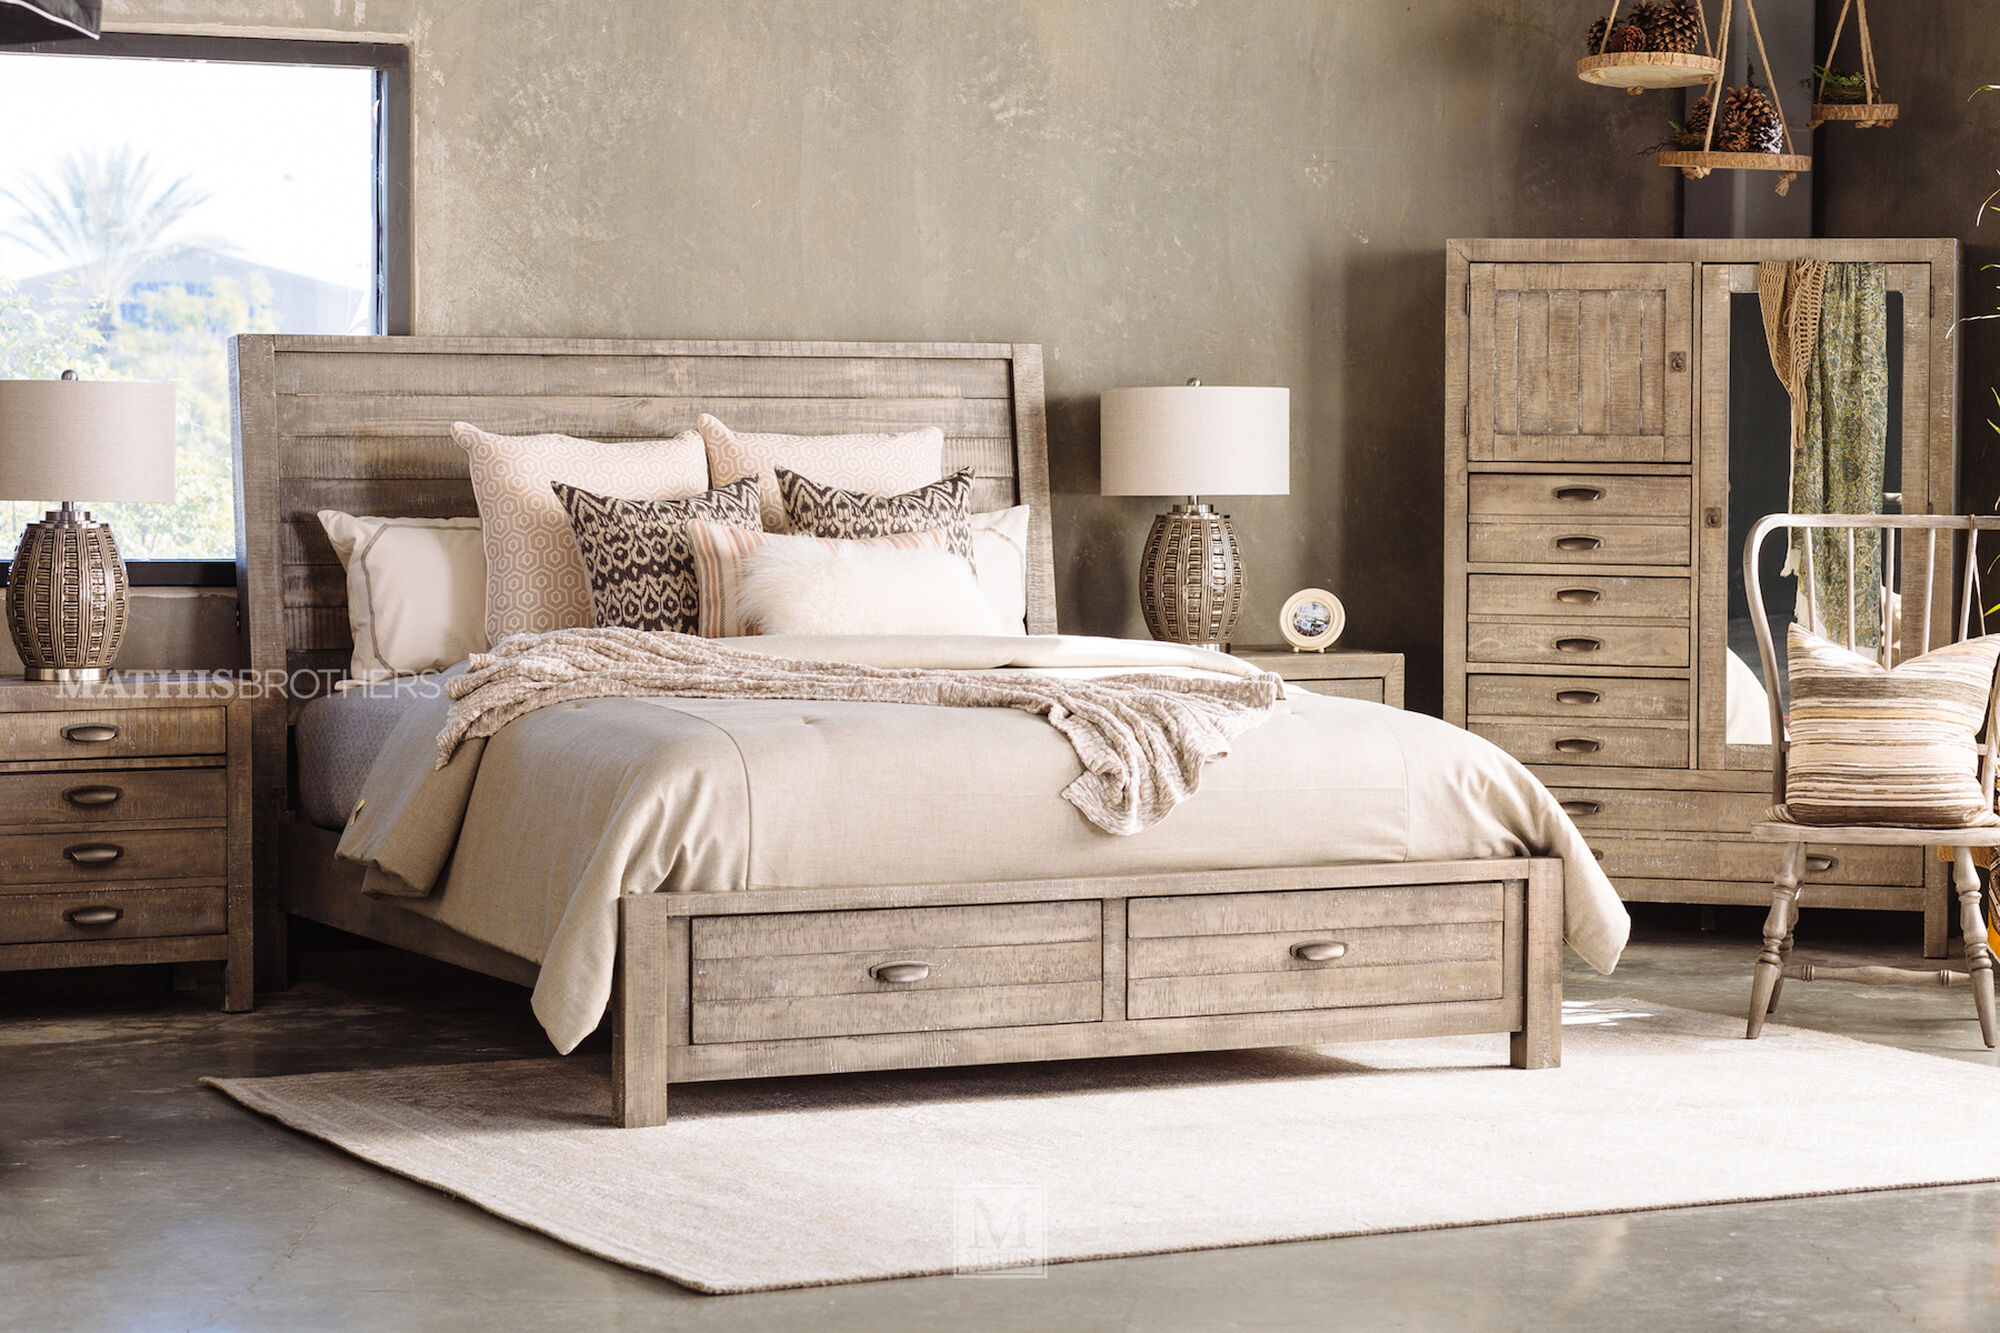 2a455f04d3d9 Three-Piece Solid Wood Storage Bedroom Set in River Rock | Mathis ...